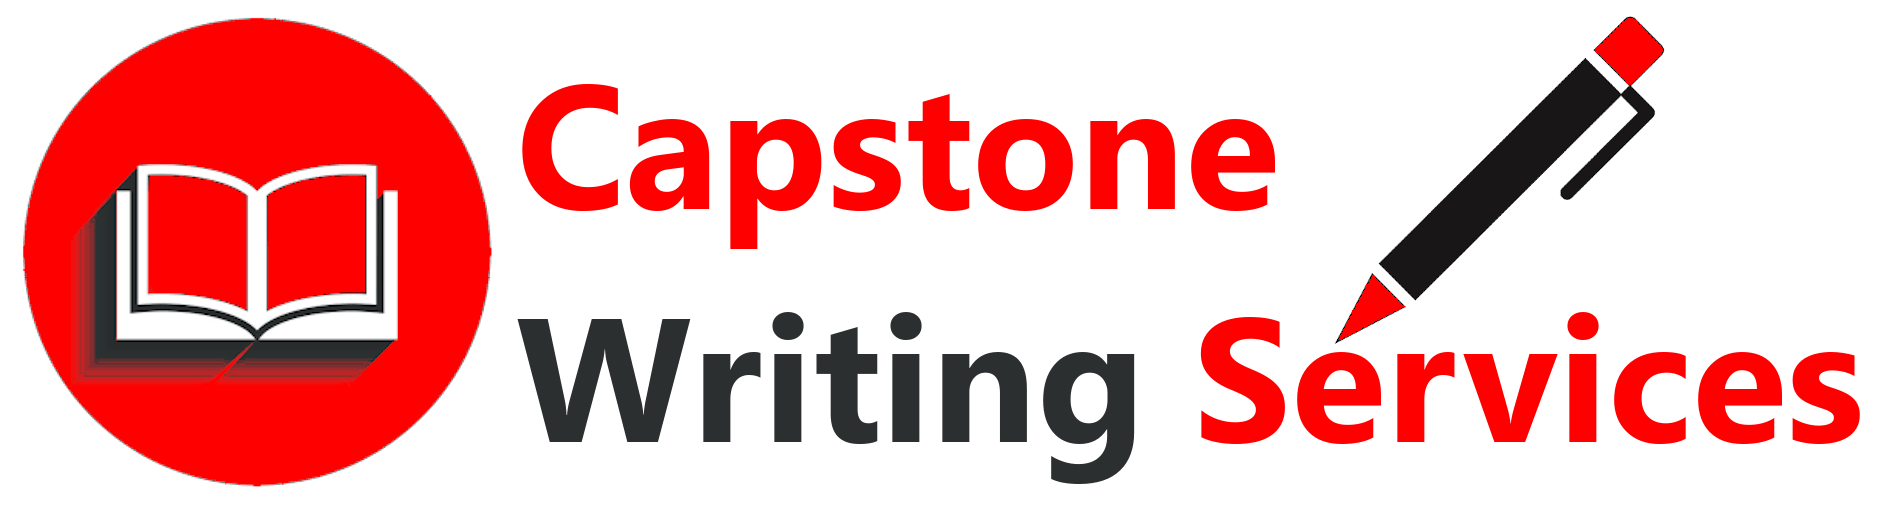 Capstone Writing Services